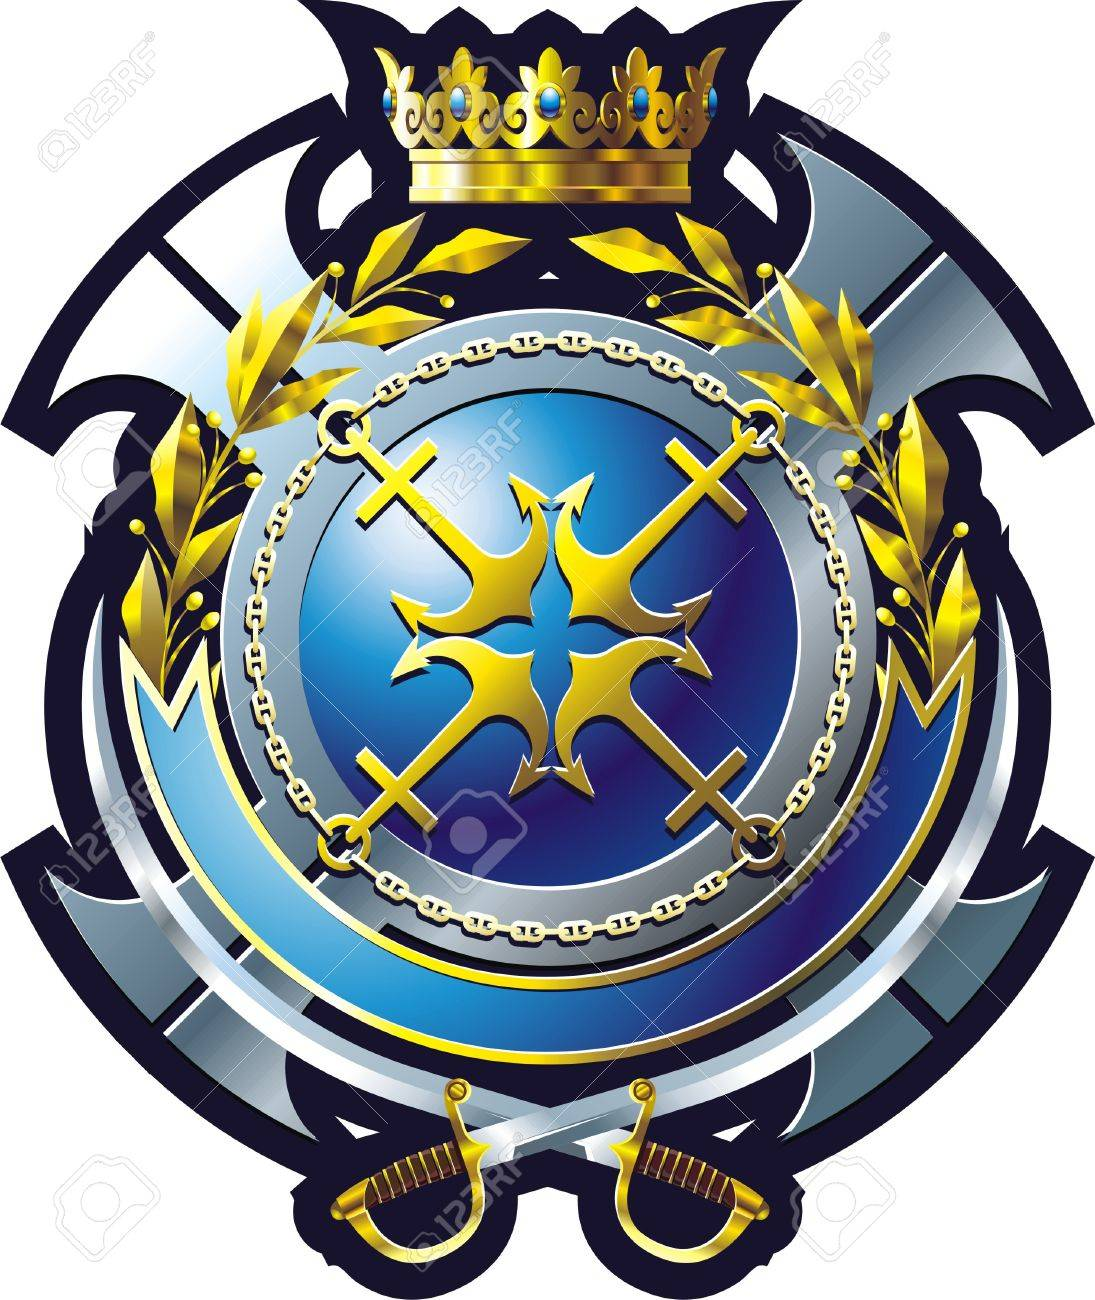 NAVY style emblem with anchor, cross and crown Stock Vector - 7877491